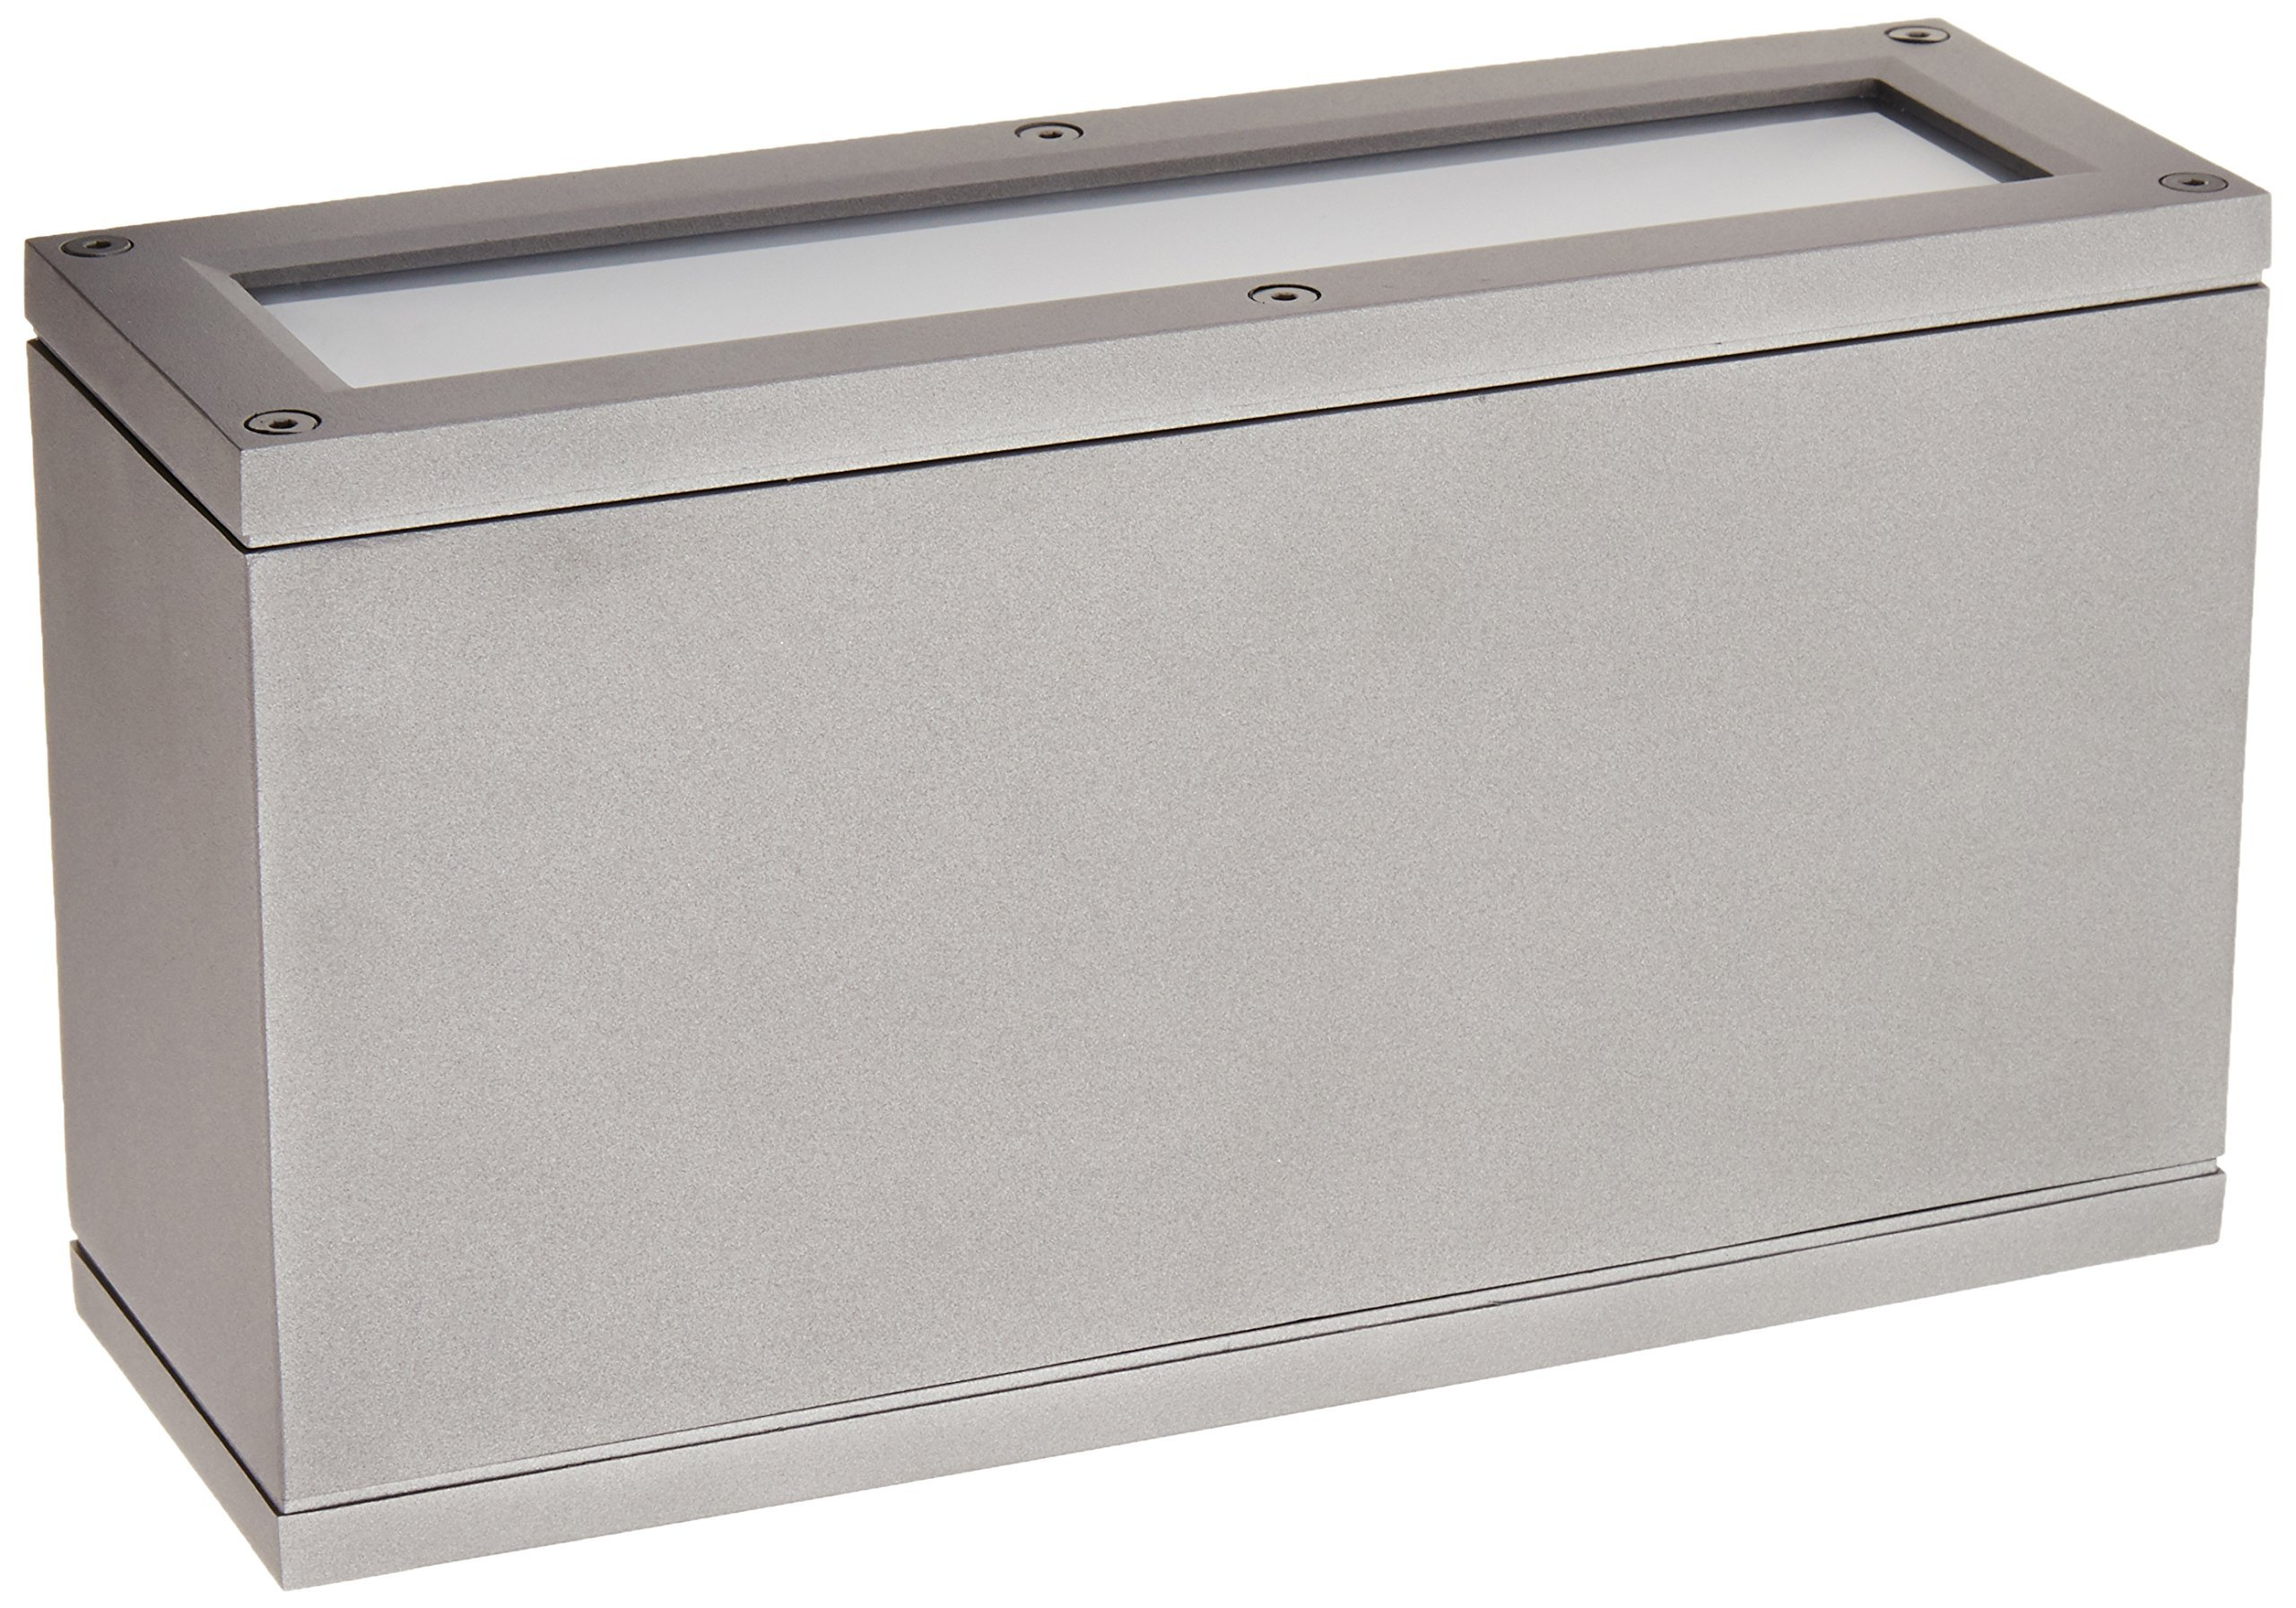 WAC Lighting WS-W2510-GH Rubix LED Outdoor Rectangular Up and Down Wall Light Fixture, One Size, White/Graphite